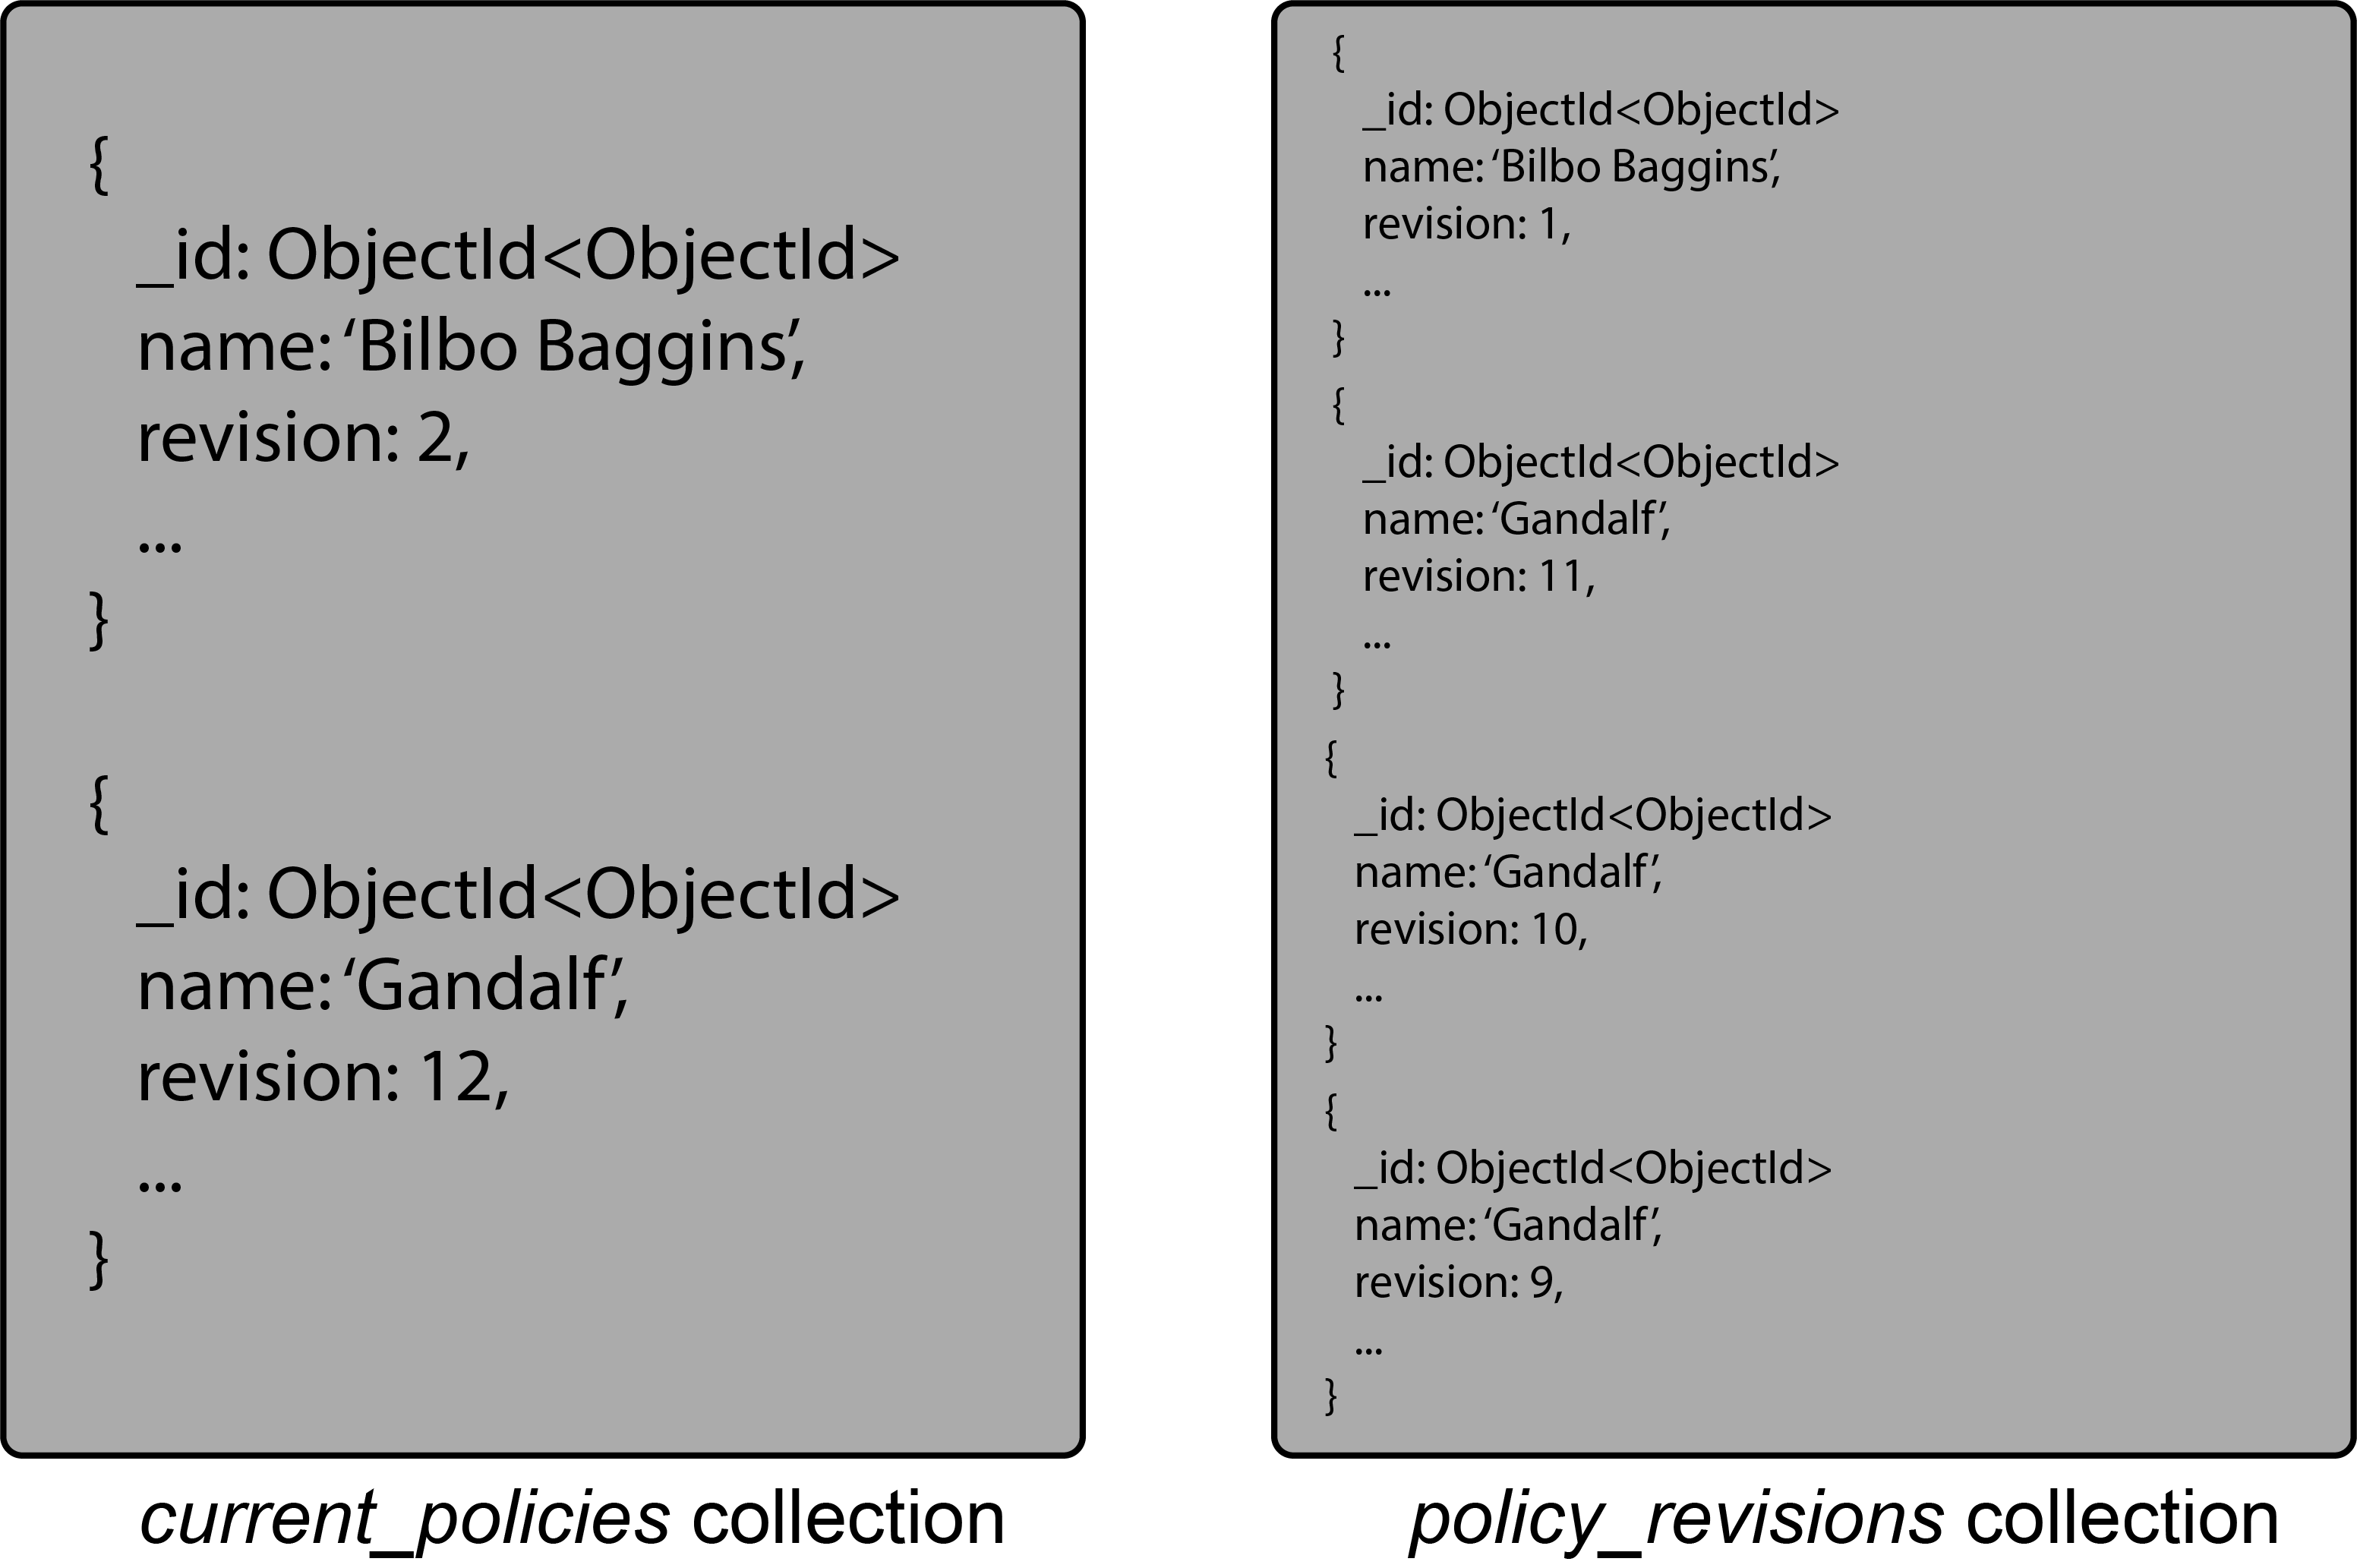 Policy Revisions and Current Policy Collections